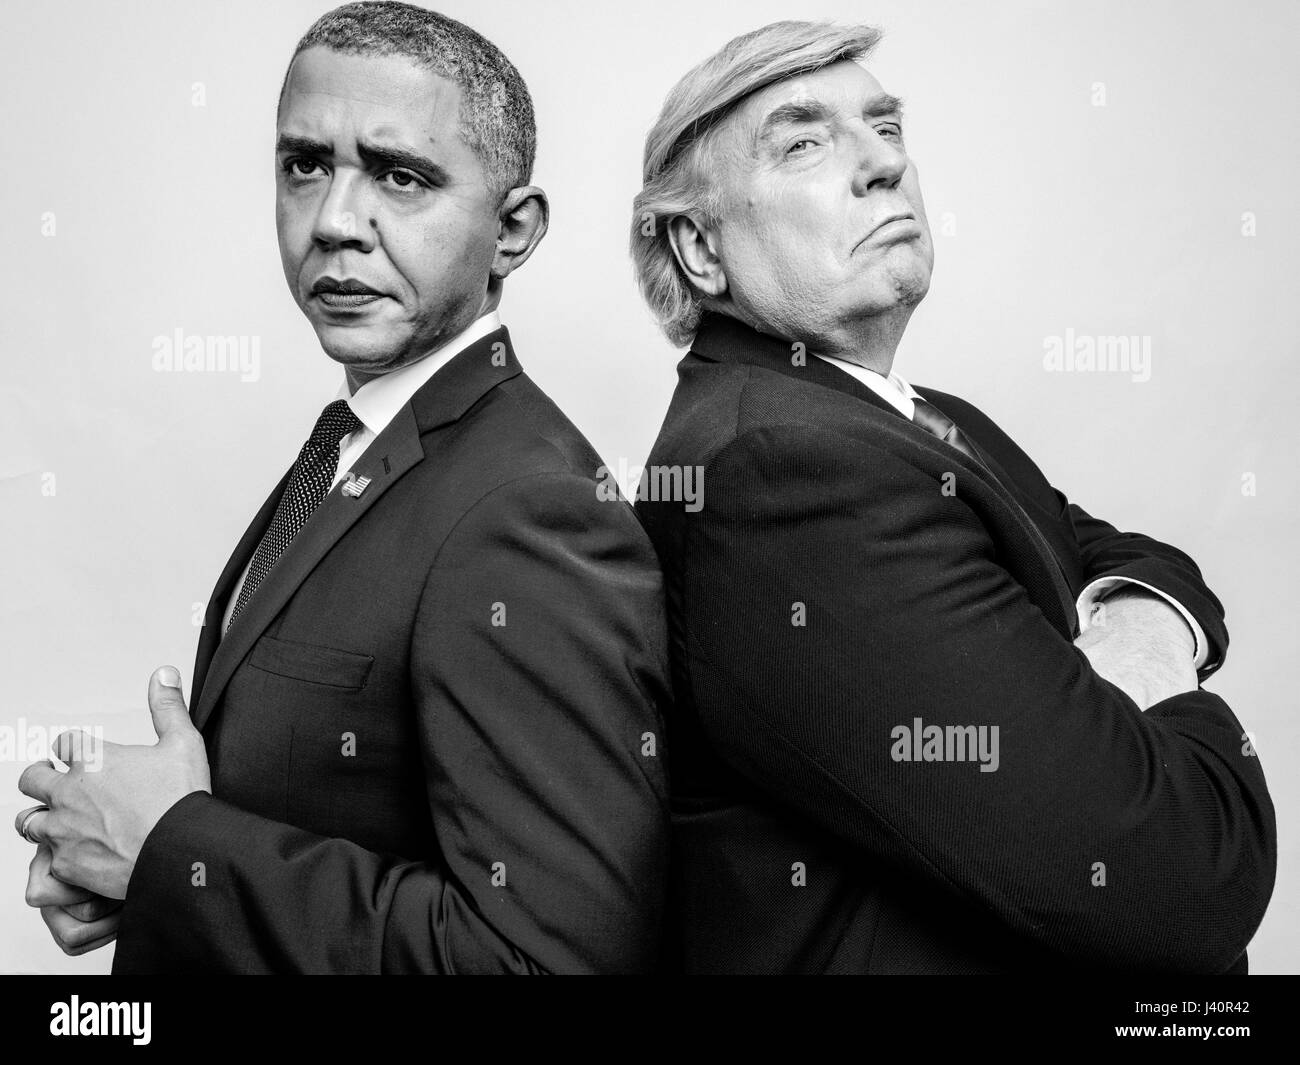 President Donald J Trump and President Obama lookalikes meet for a studio shoot in Hong Kong. - Stock Image